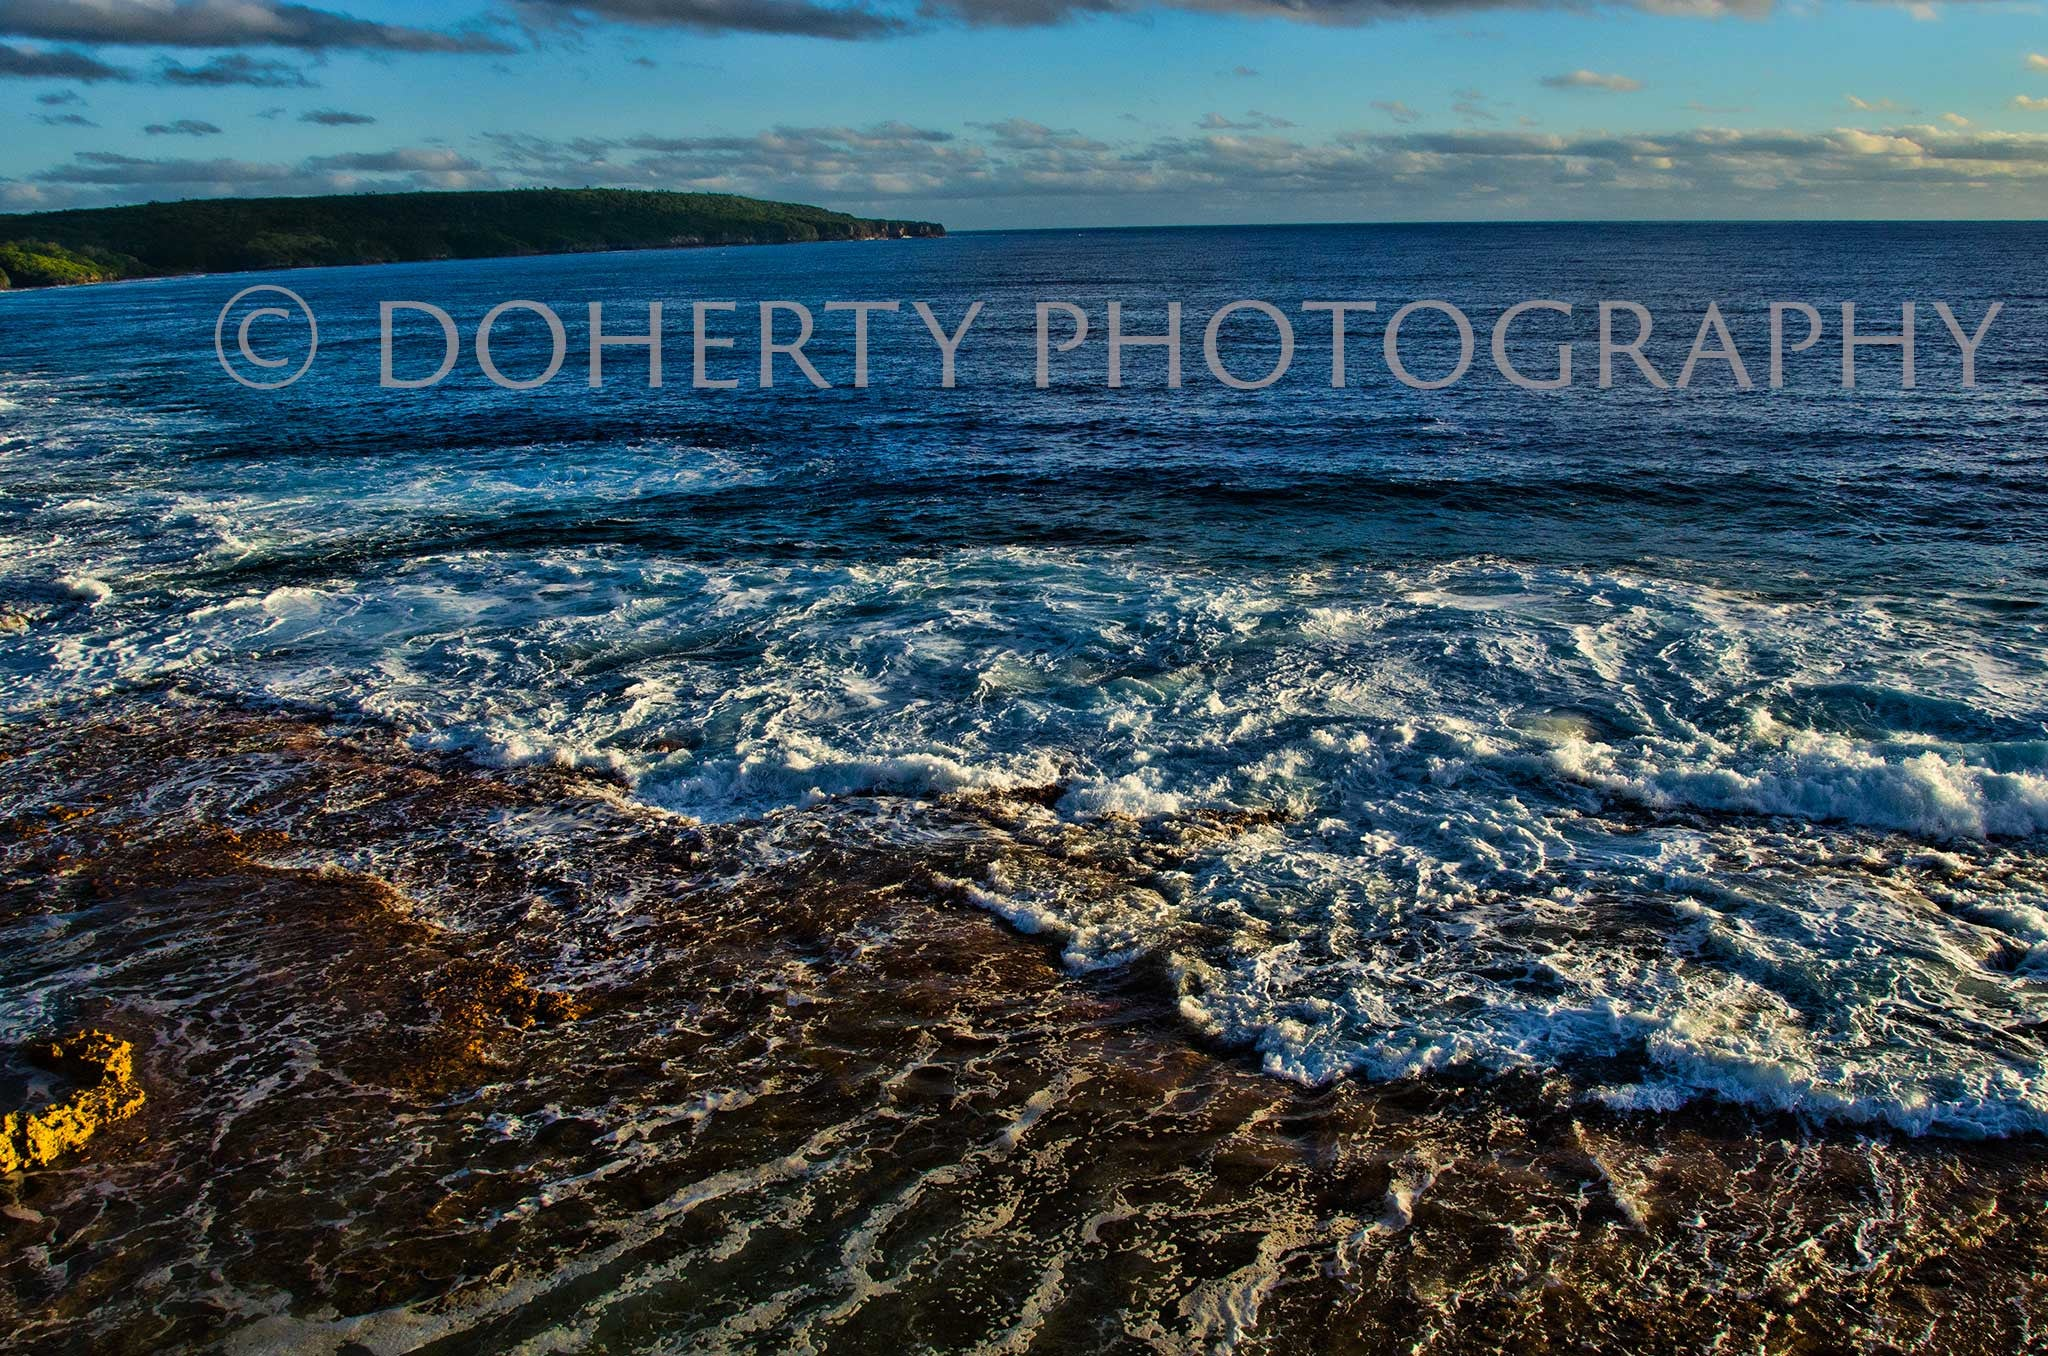 Matavai - Doherty Photography